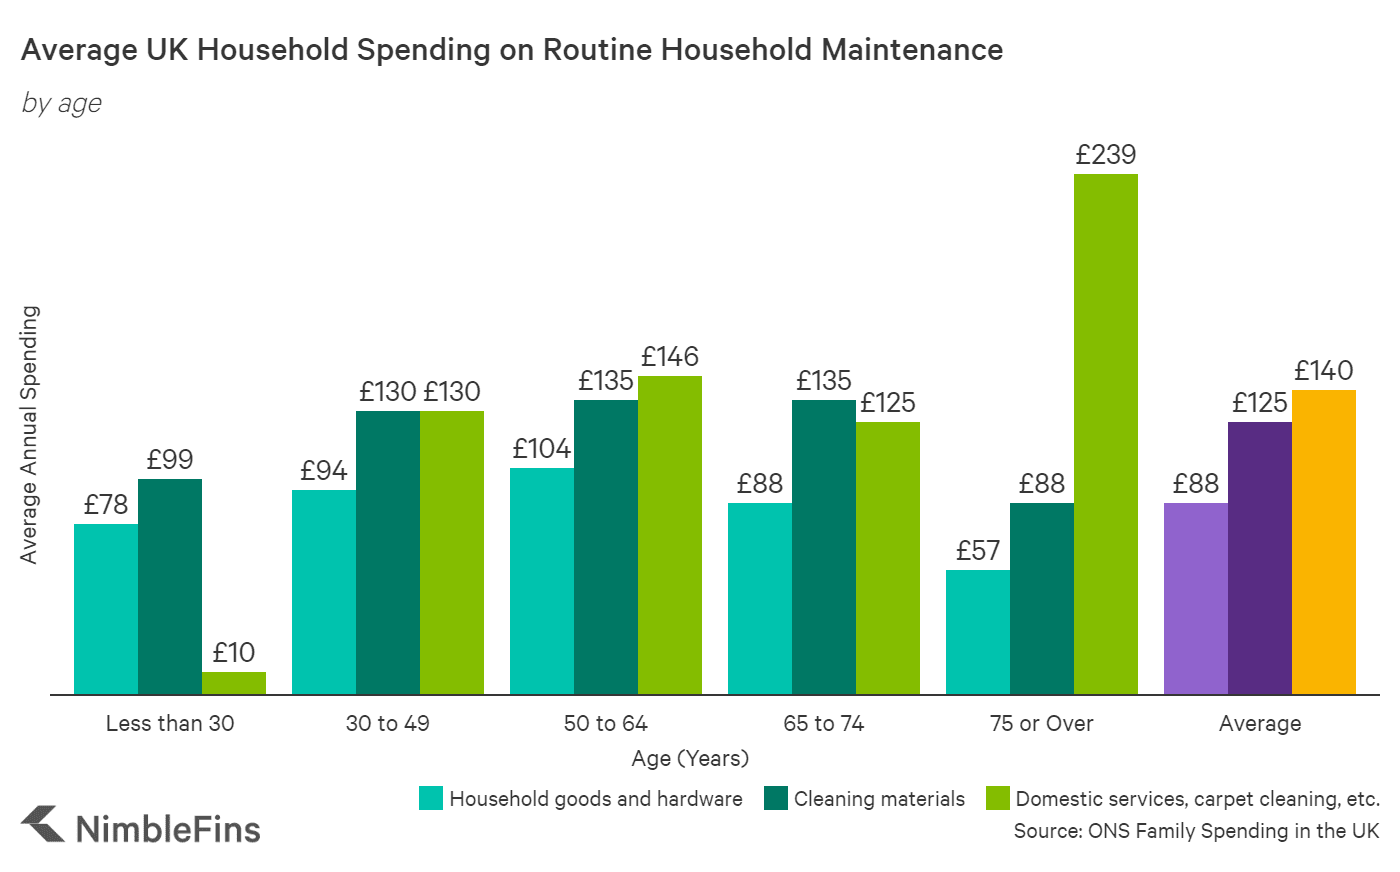 chart showing household spending on maintenance by age